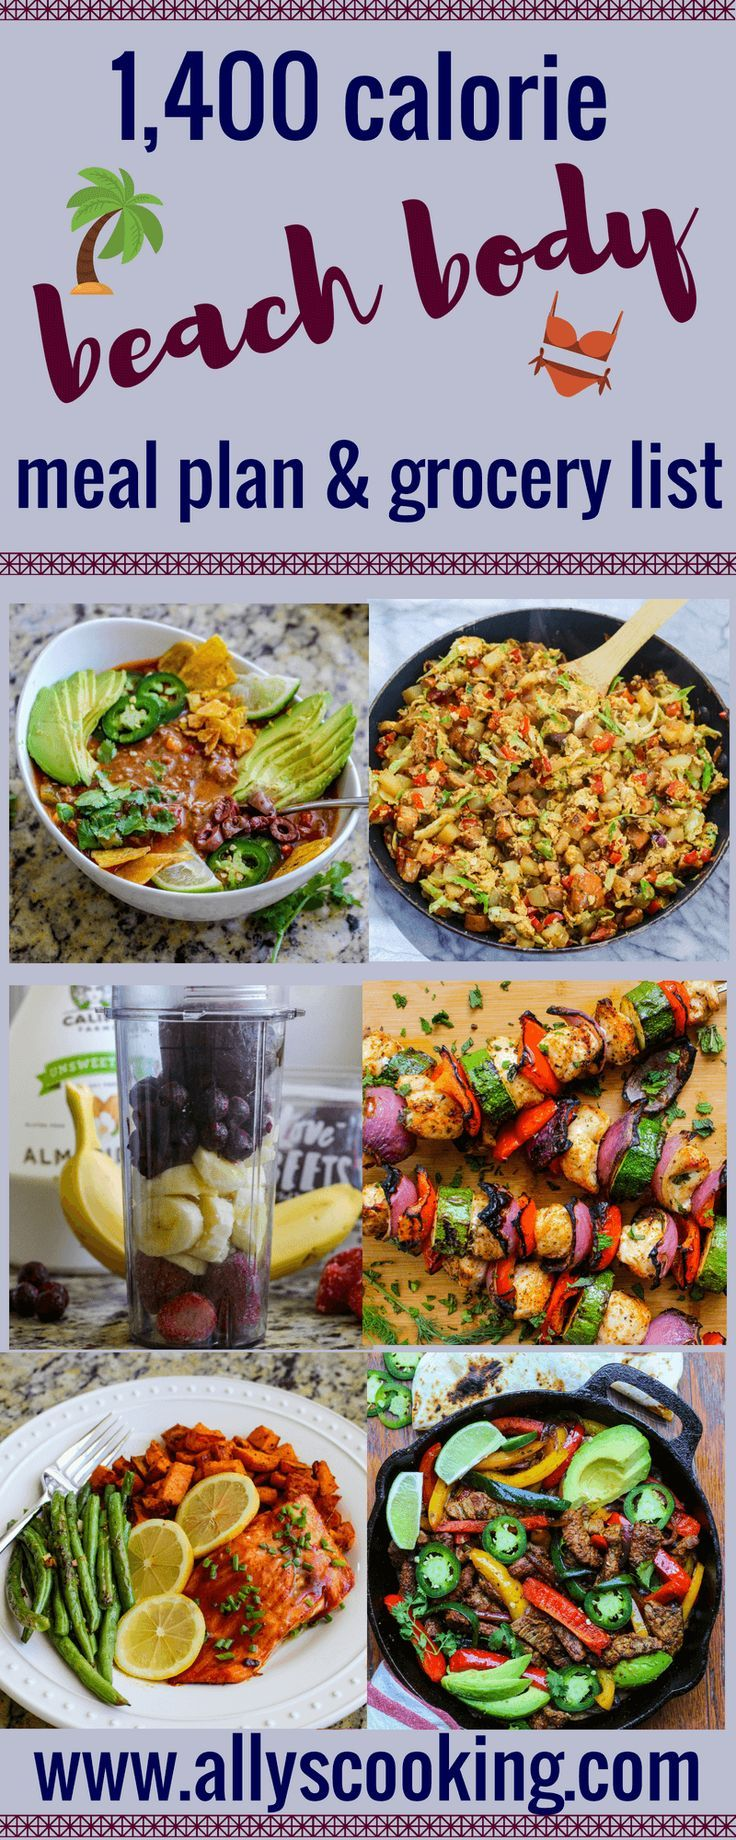 1,400 Calorie Beach Body Meal Plan & Grocery List | Healthy